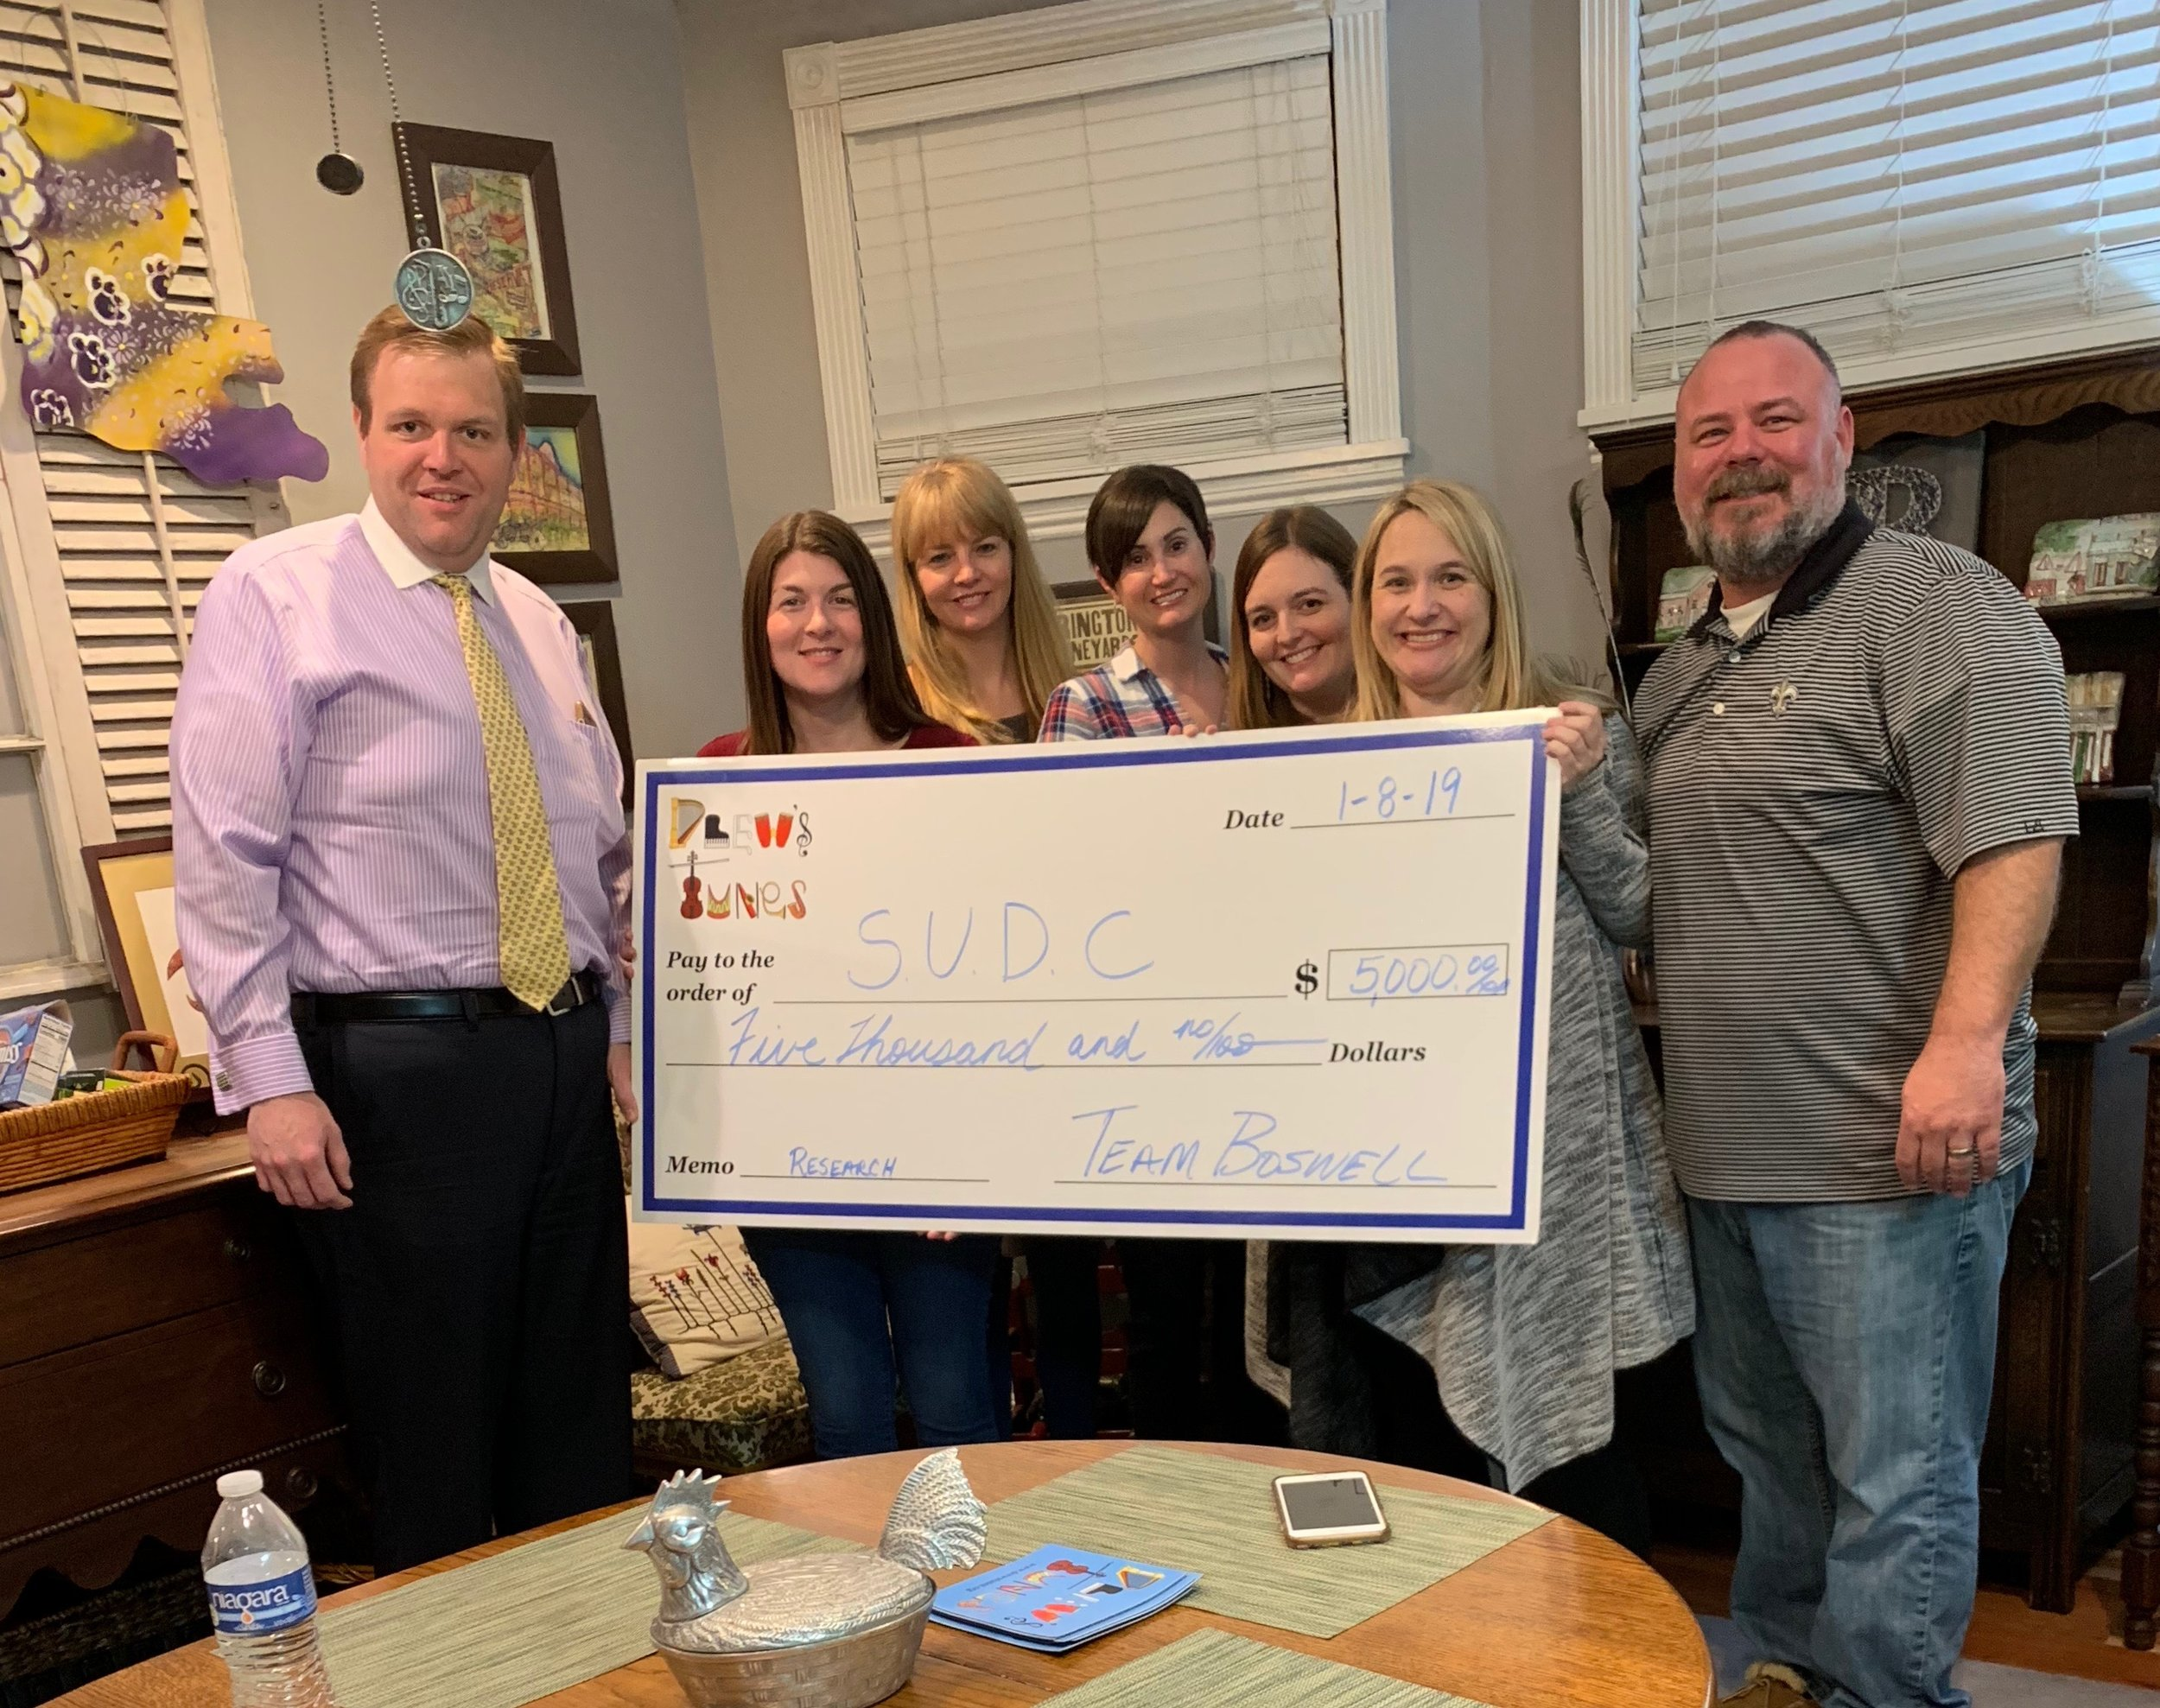 Drew's Tunes Board recently donated $5,000 to the SUDC Foundation.